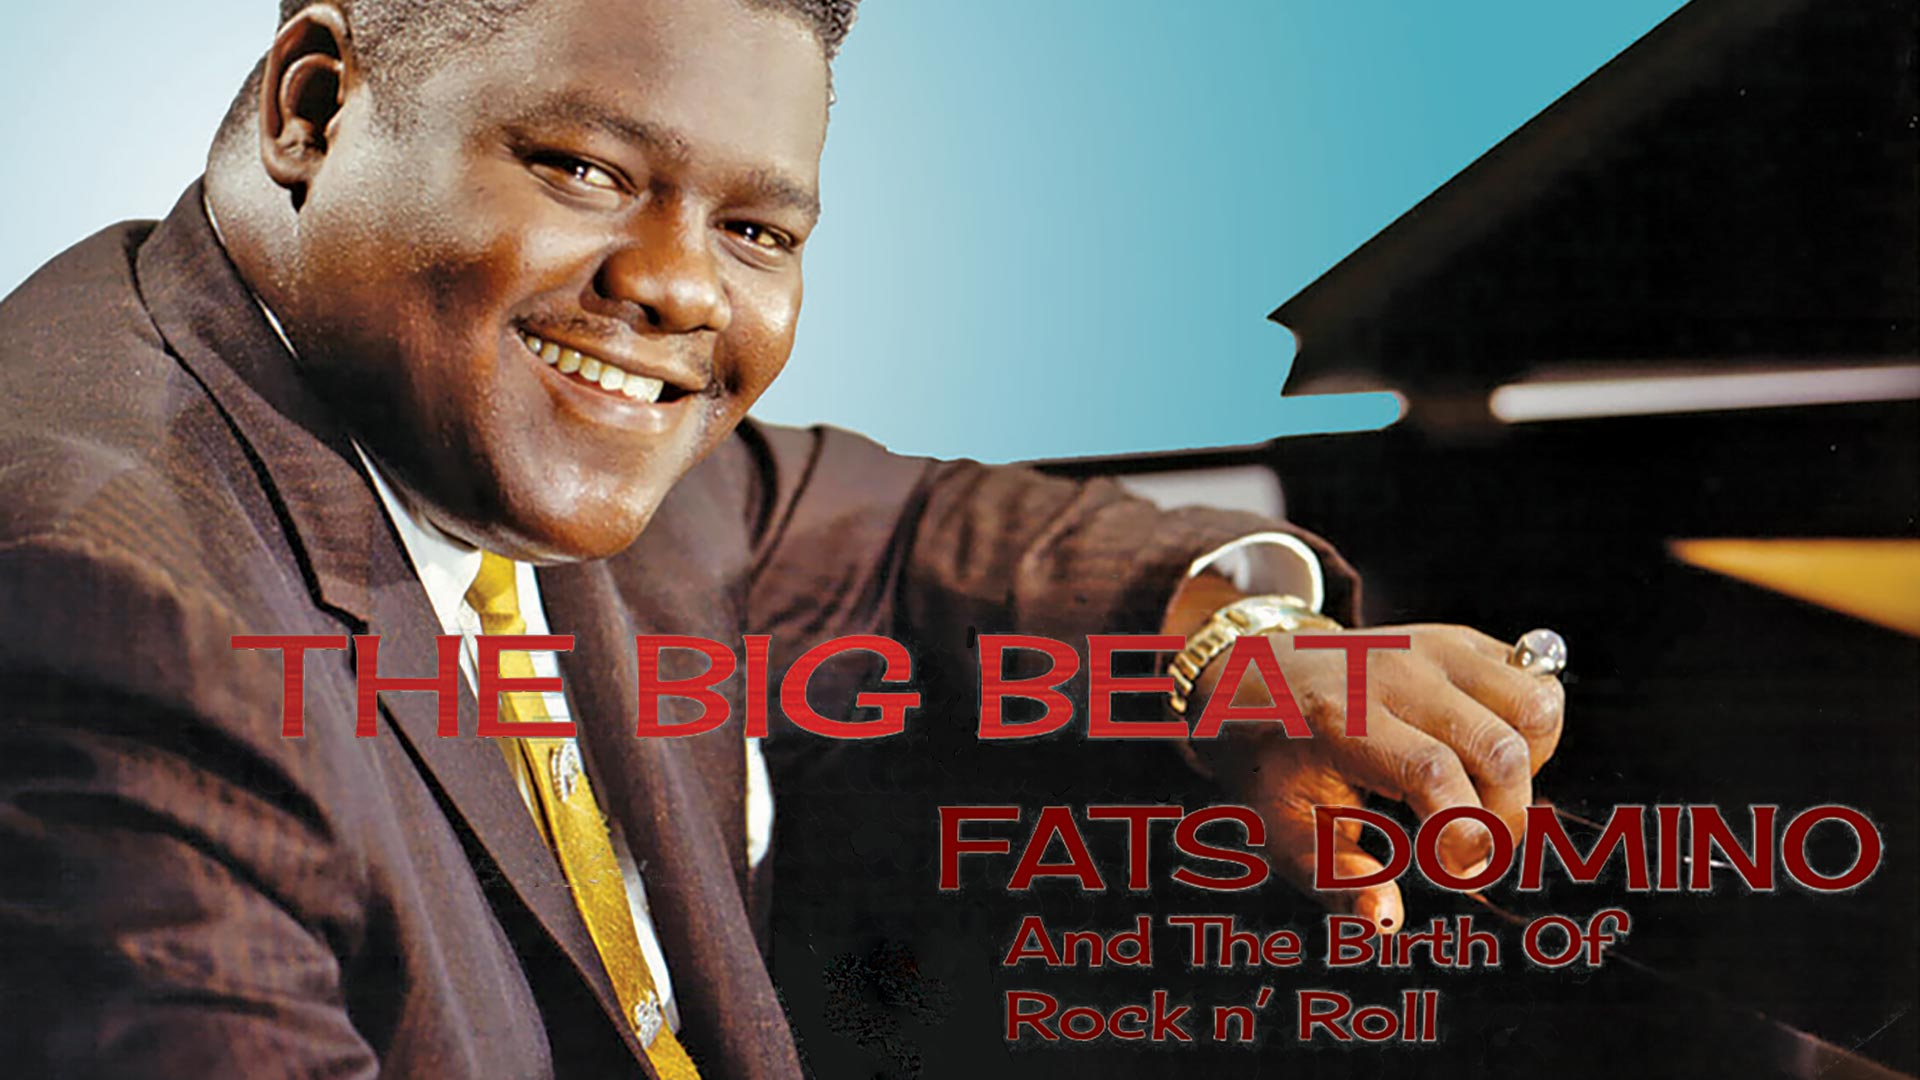 Fats Domino - The Big Beat: Fats Domino And The Birth Of Rock N Roll